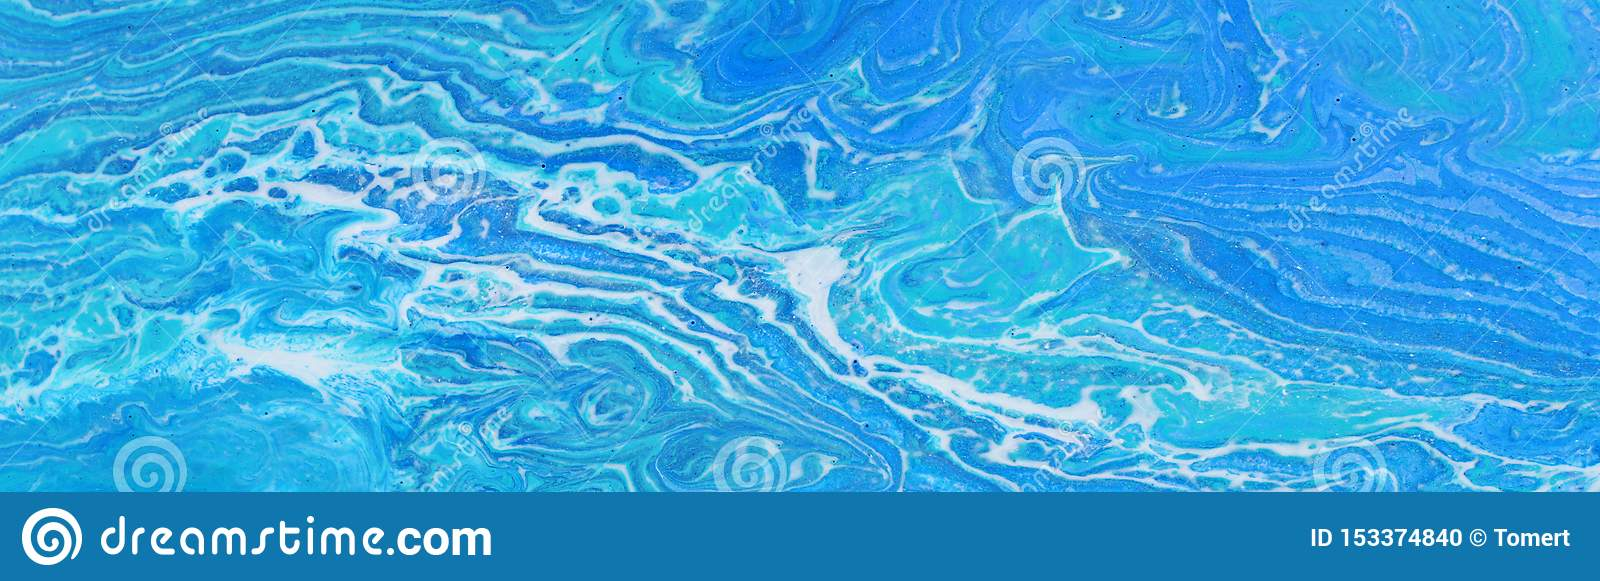 Photography Of Abstract Marbleized Effect Background Blue